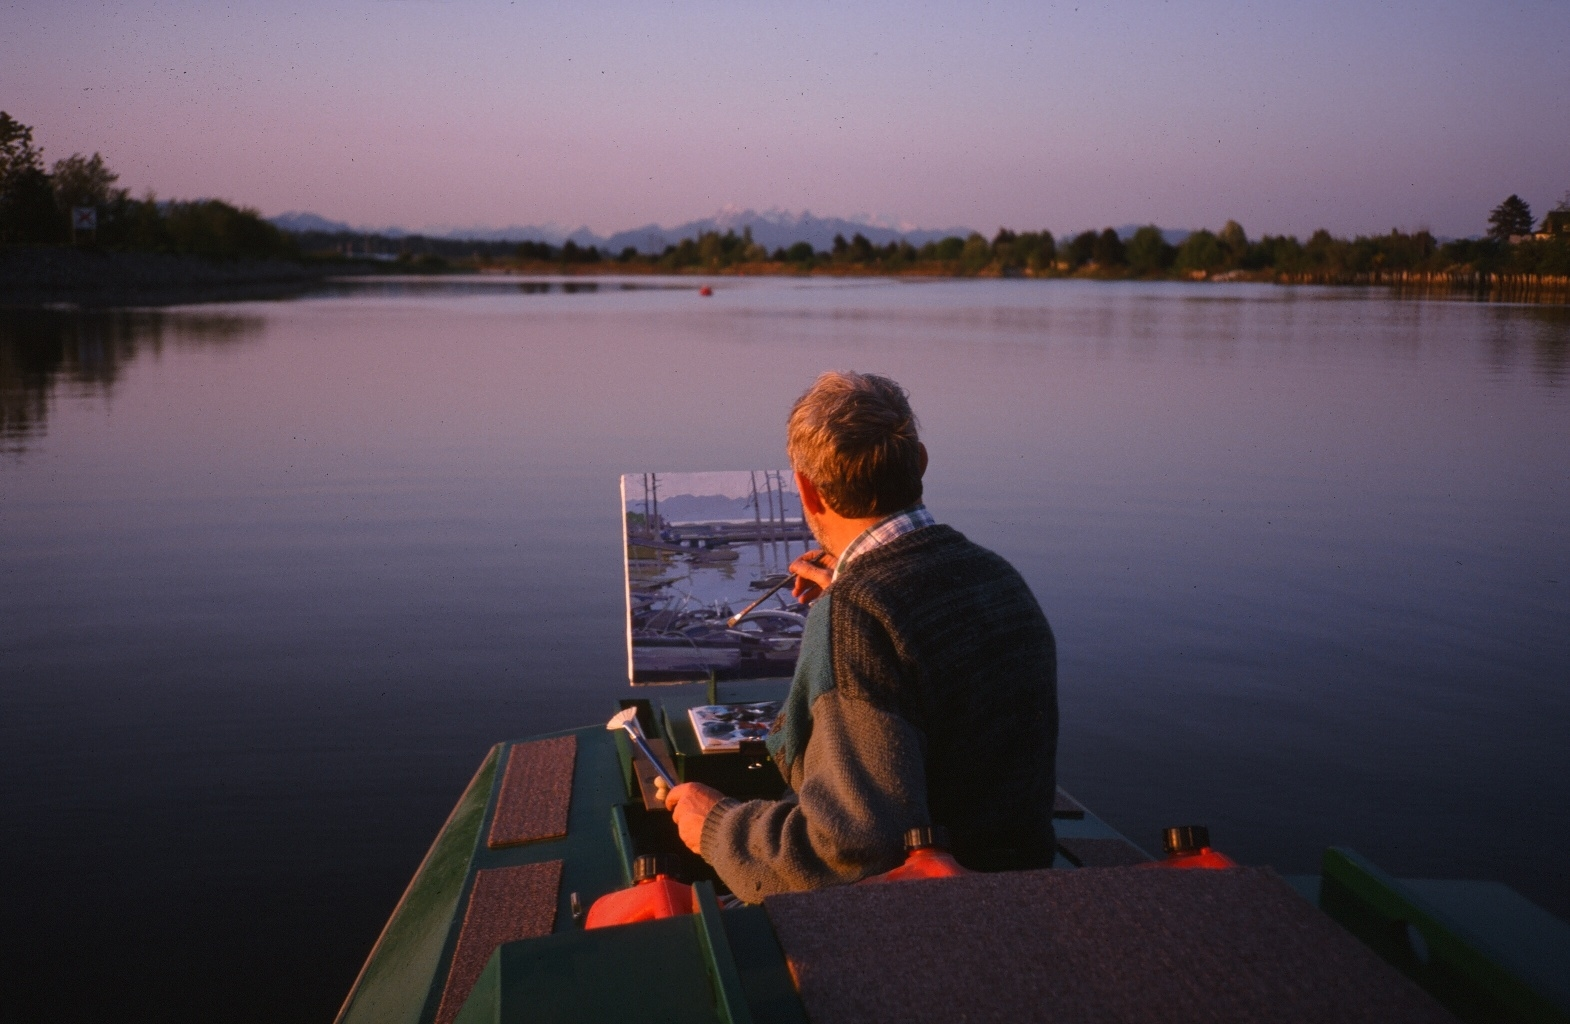 Robert Genn on his flat-bottomed scow  Alexander Mackenzie  on the Nicomeckl River, South Surrey, BC, Canada circa 2000.